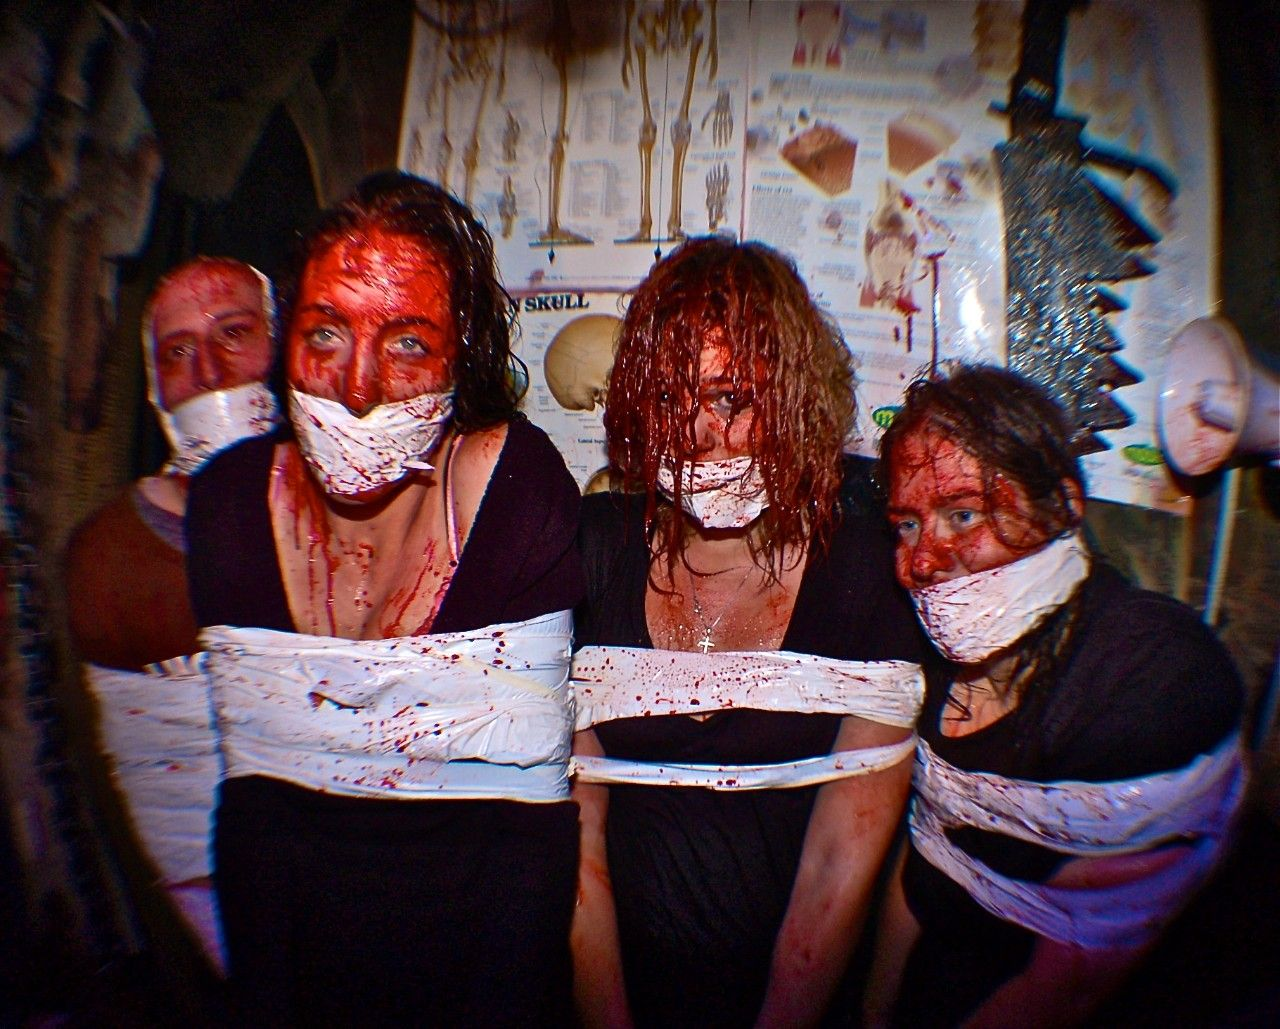 haunted houses, mystery manor, background checks, background screening, halloween, assault, scary